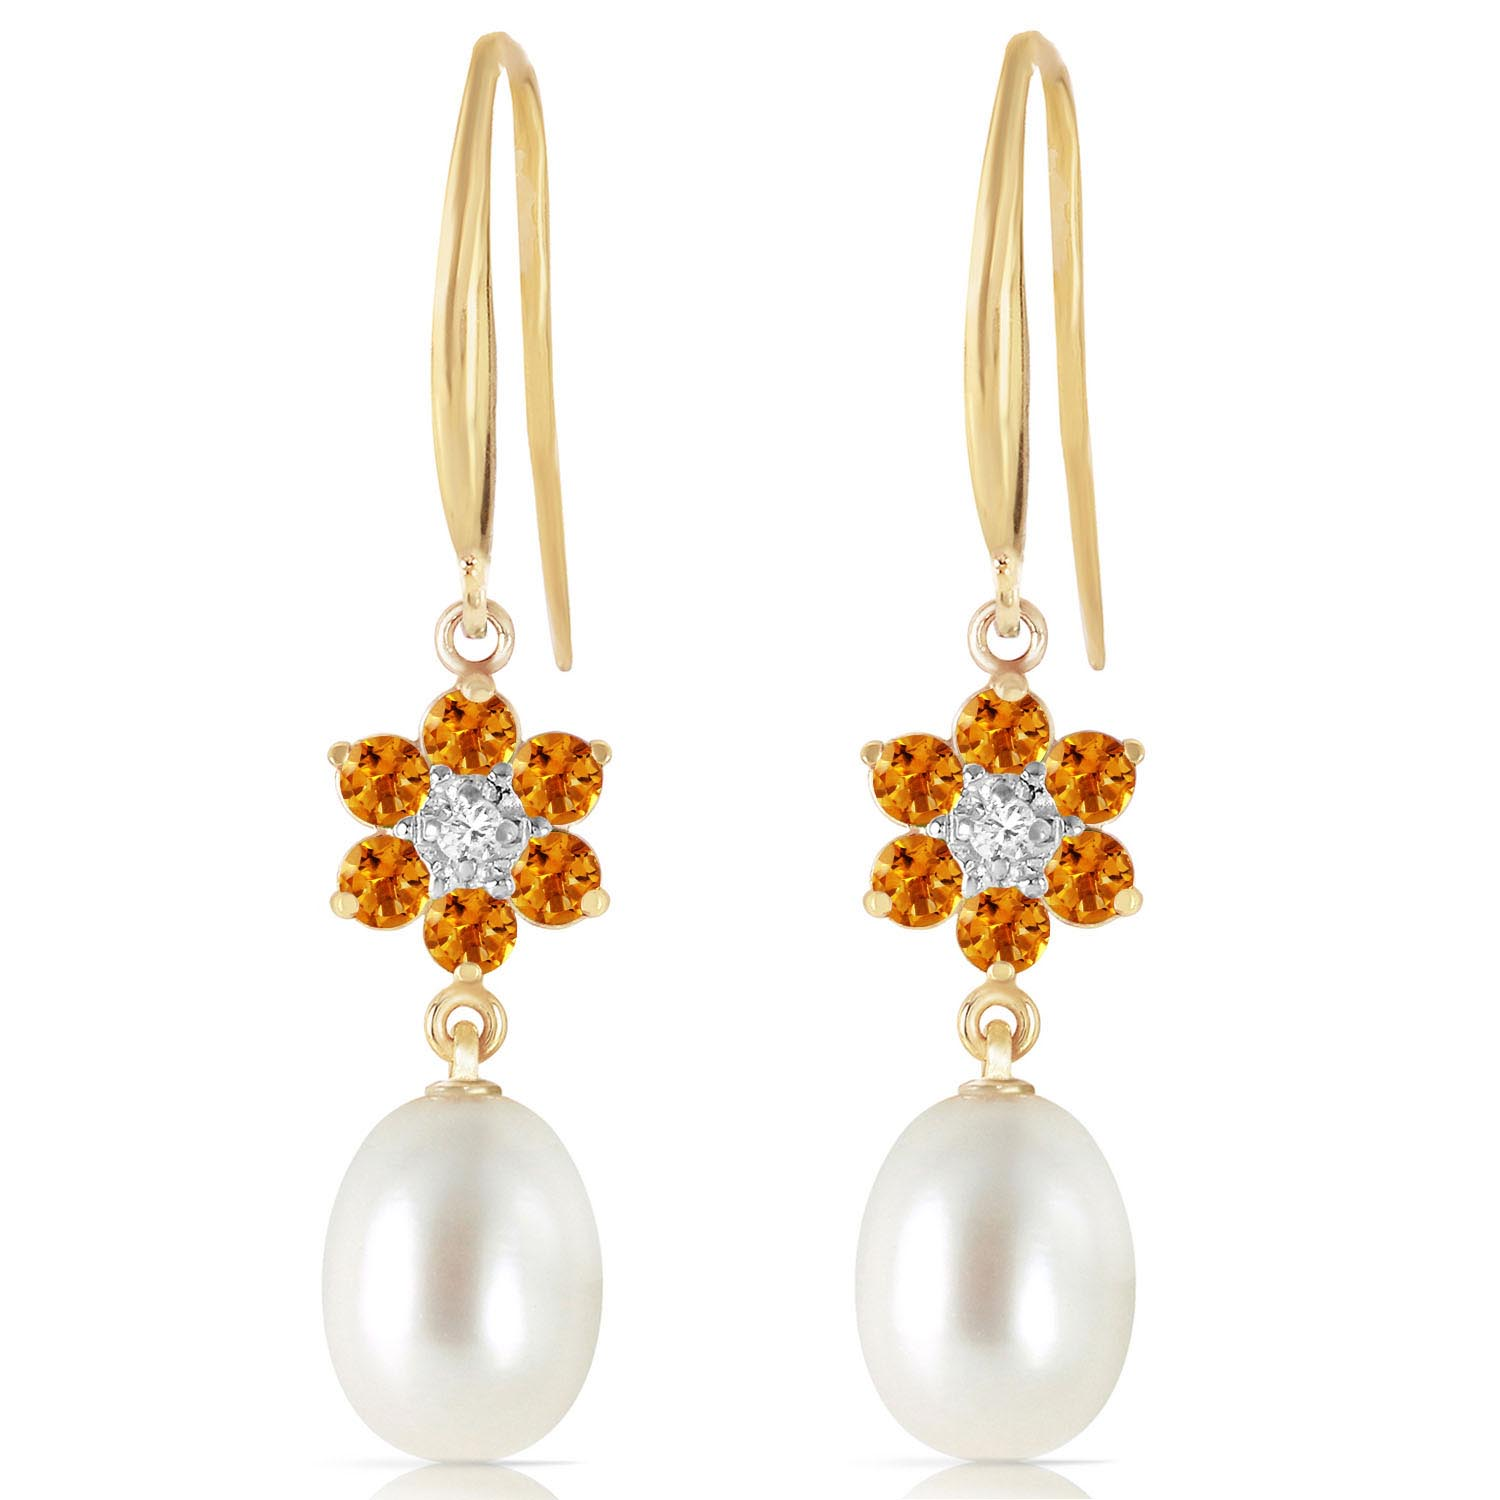 Pearl, Diamond and Citrine Daisy Chain Drop Earrings 8.95ctw in 14K Gold